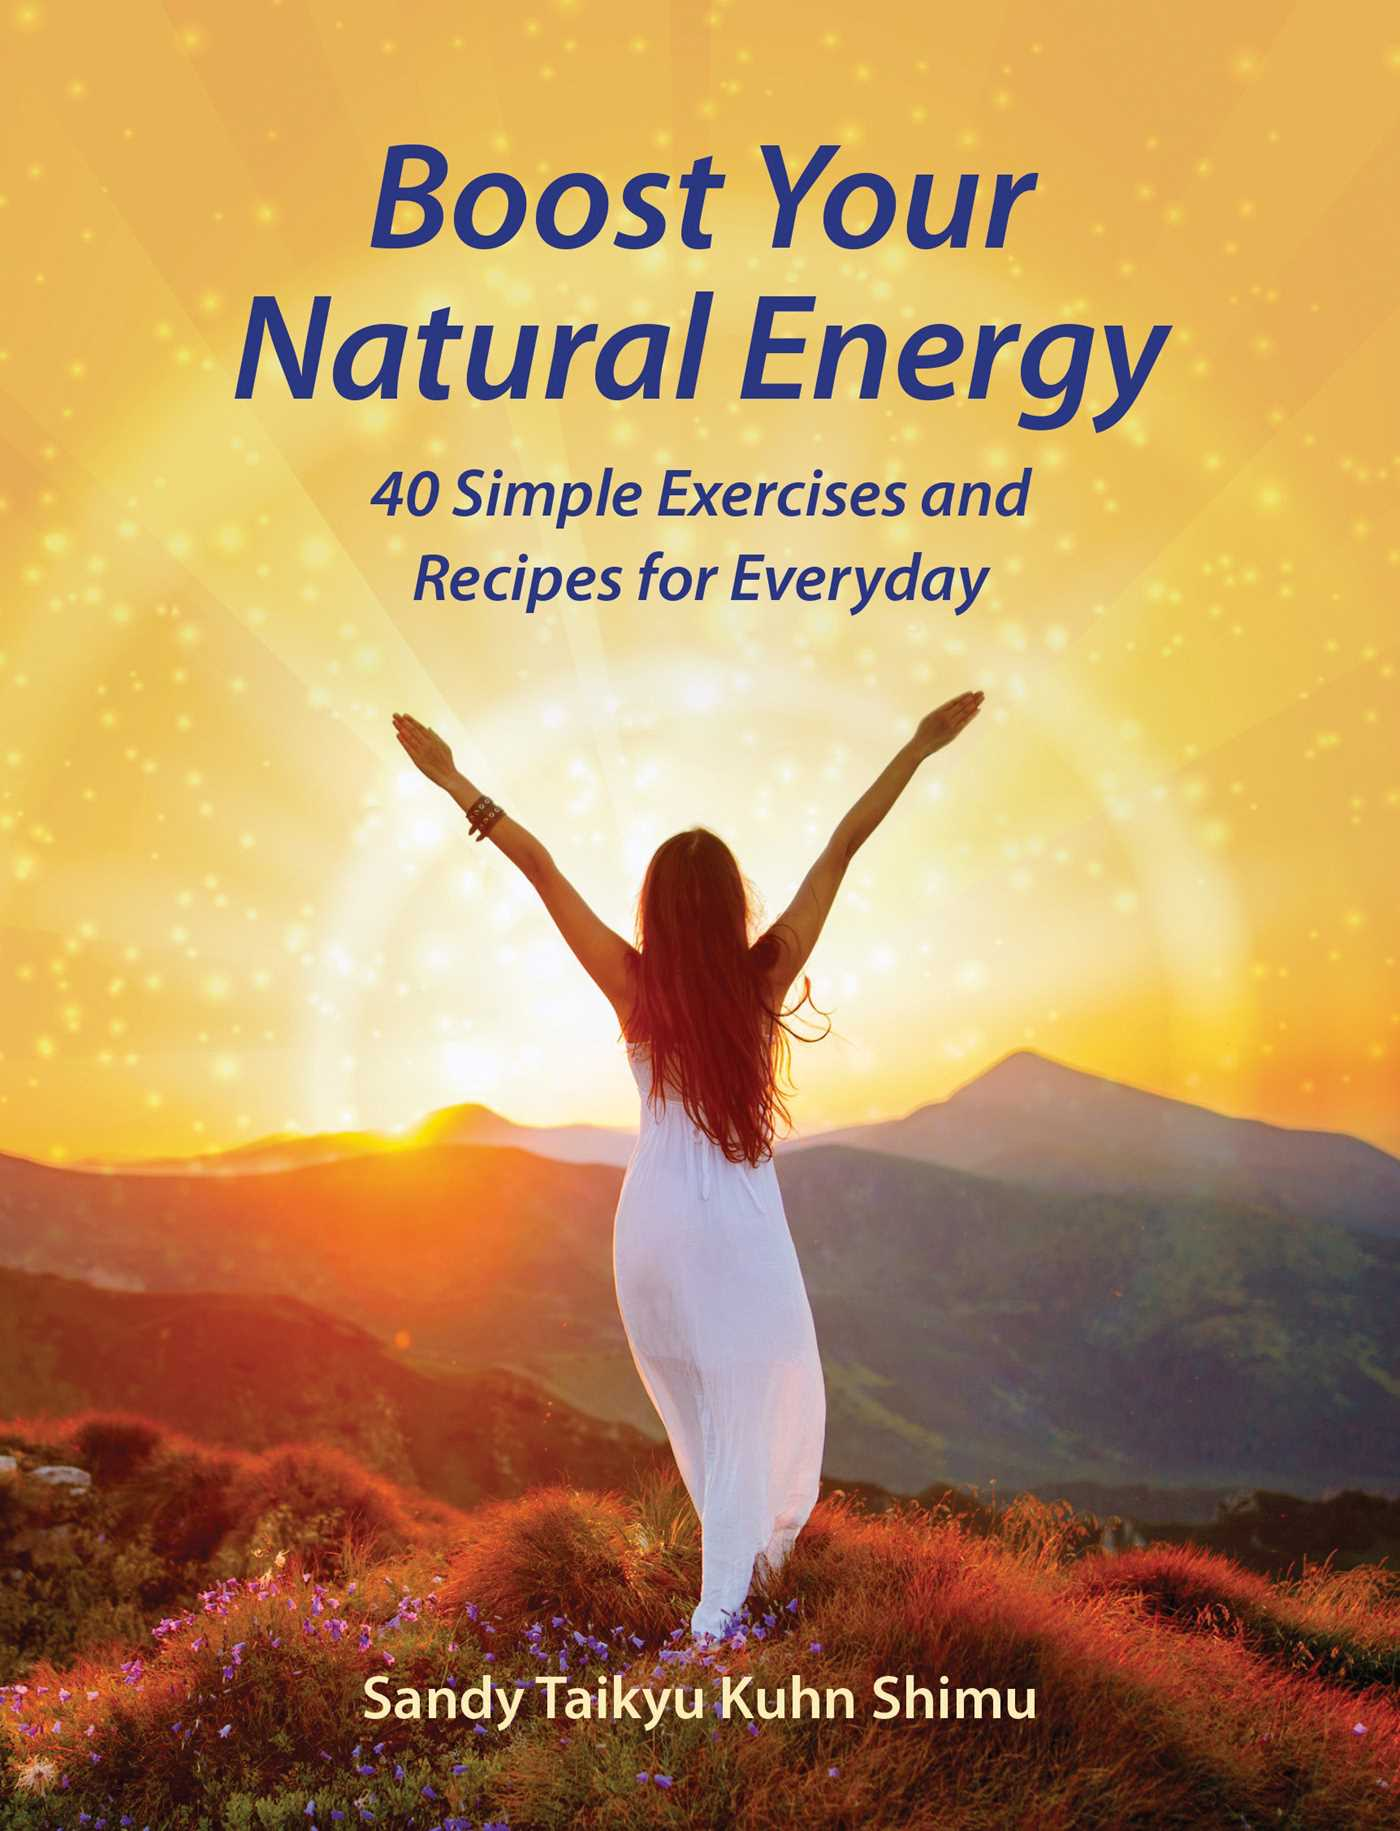 Boost Your Natural Energy | Book by Sandy Taikyu Kuhn Shimu